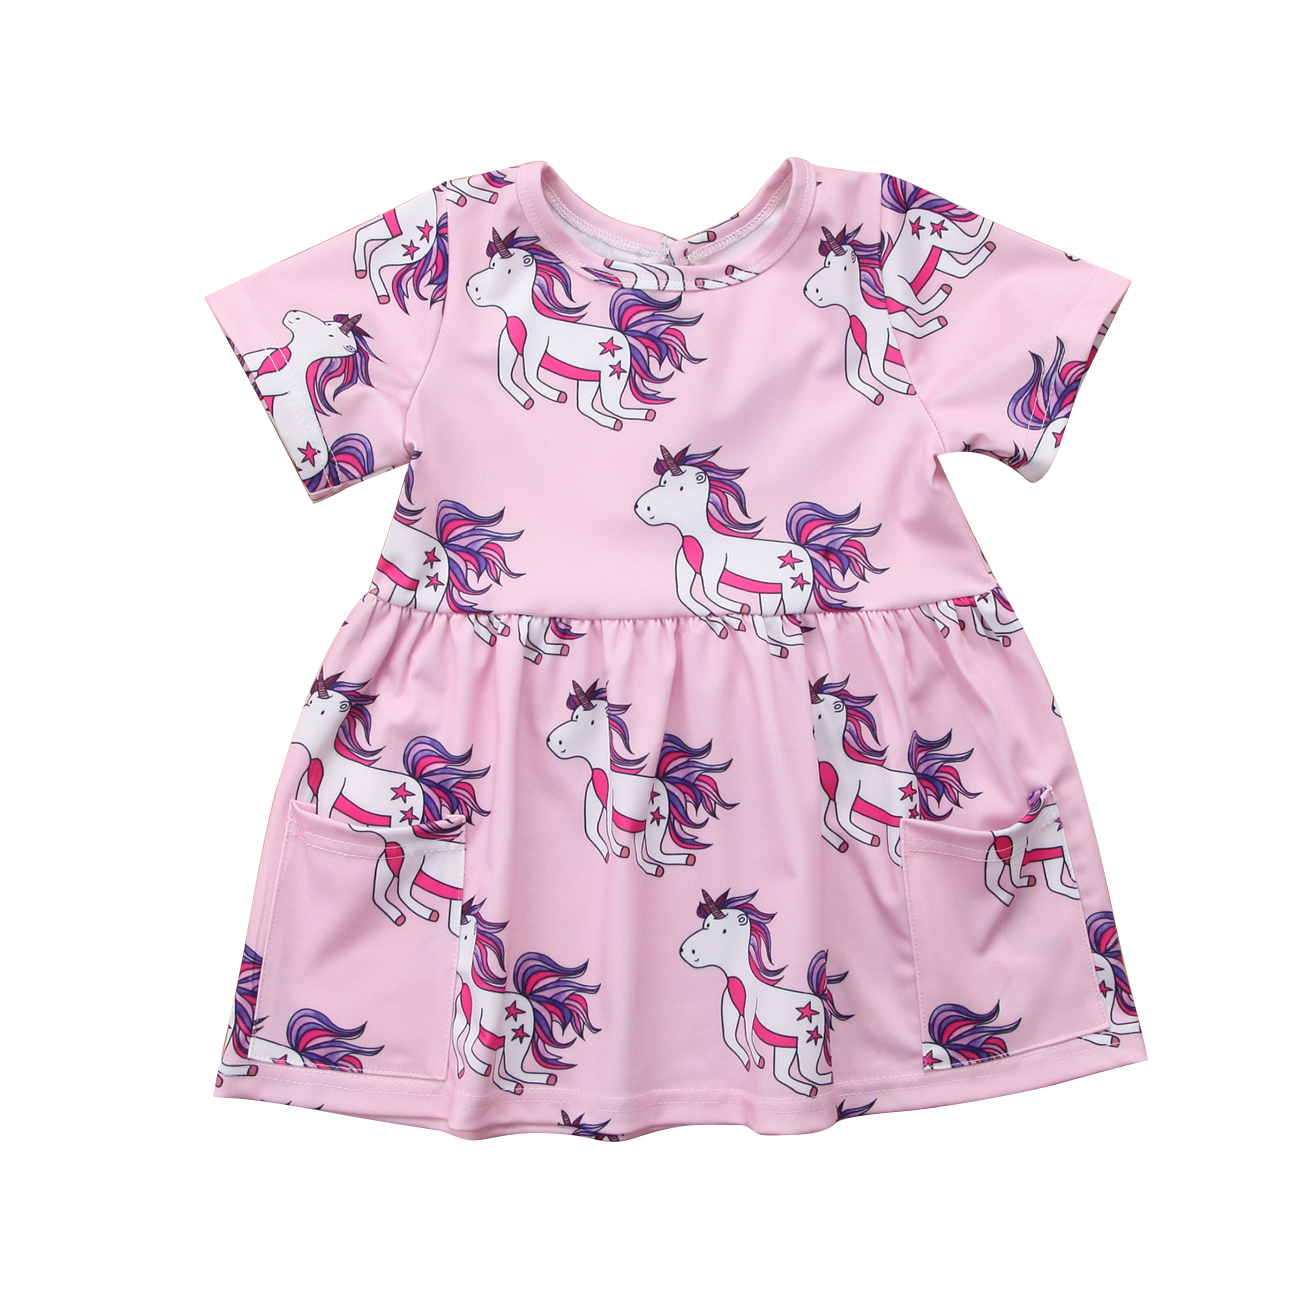 Summer new cute unicorn print dress Baby Girls Kids Toddler kid girl Casual lovely short sleeve Dresses Outfit Clothes 0-4T